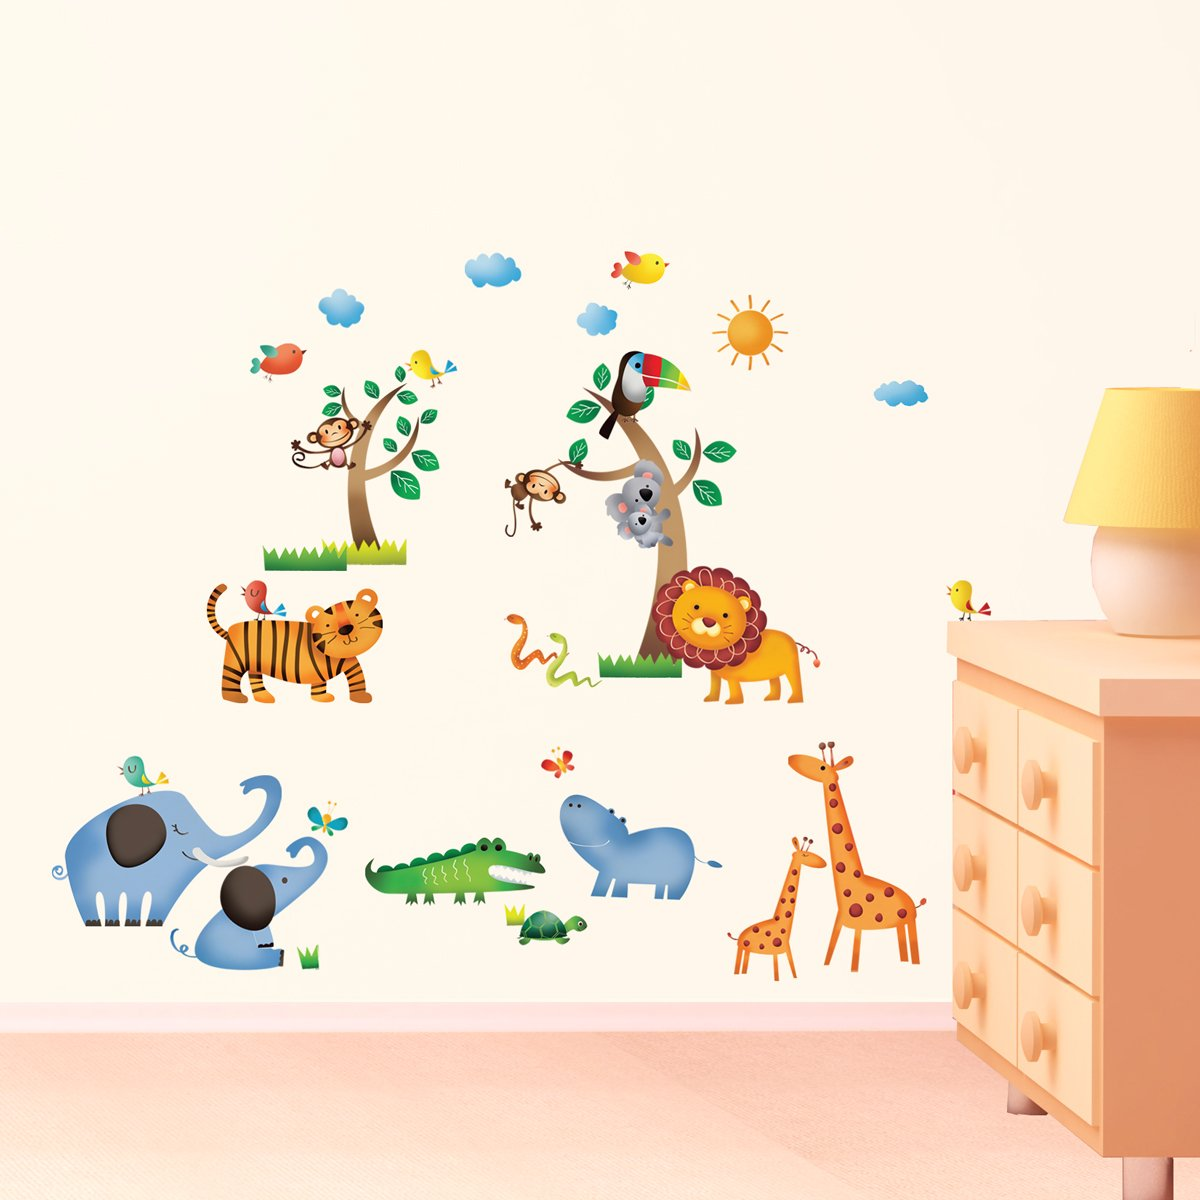 amazon com decowall dw 1206 jungle peel stick nursery wall amazon com decowall dw 1206 jungle peel stick nursery wall decals stickers baby